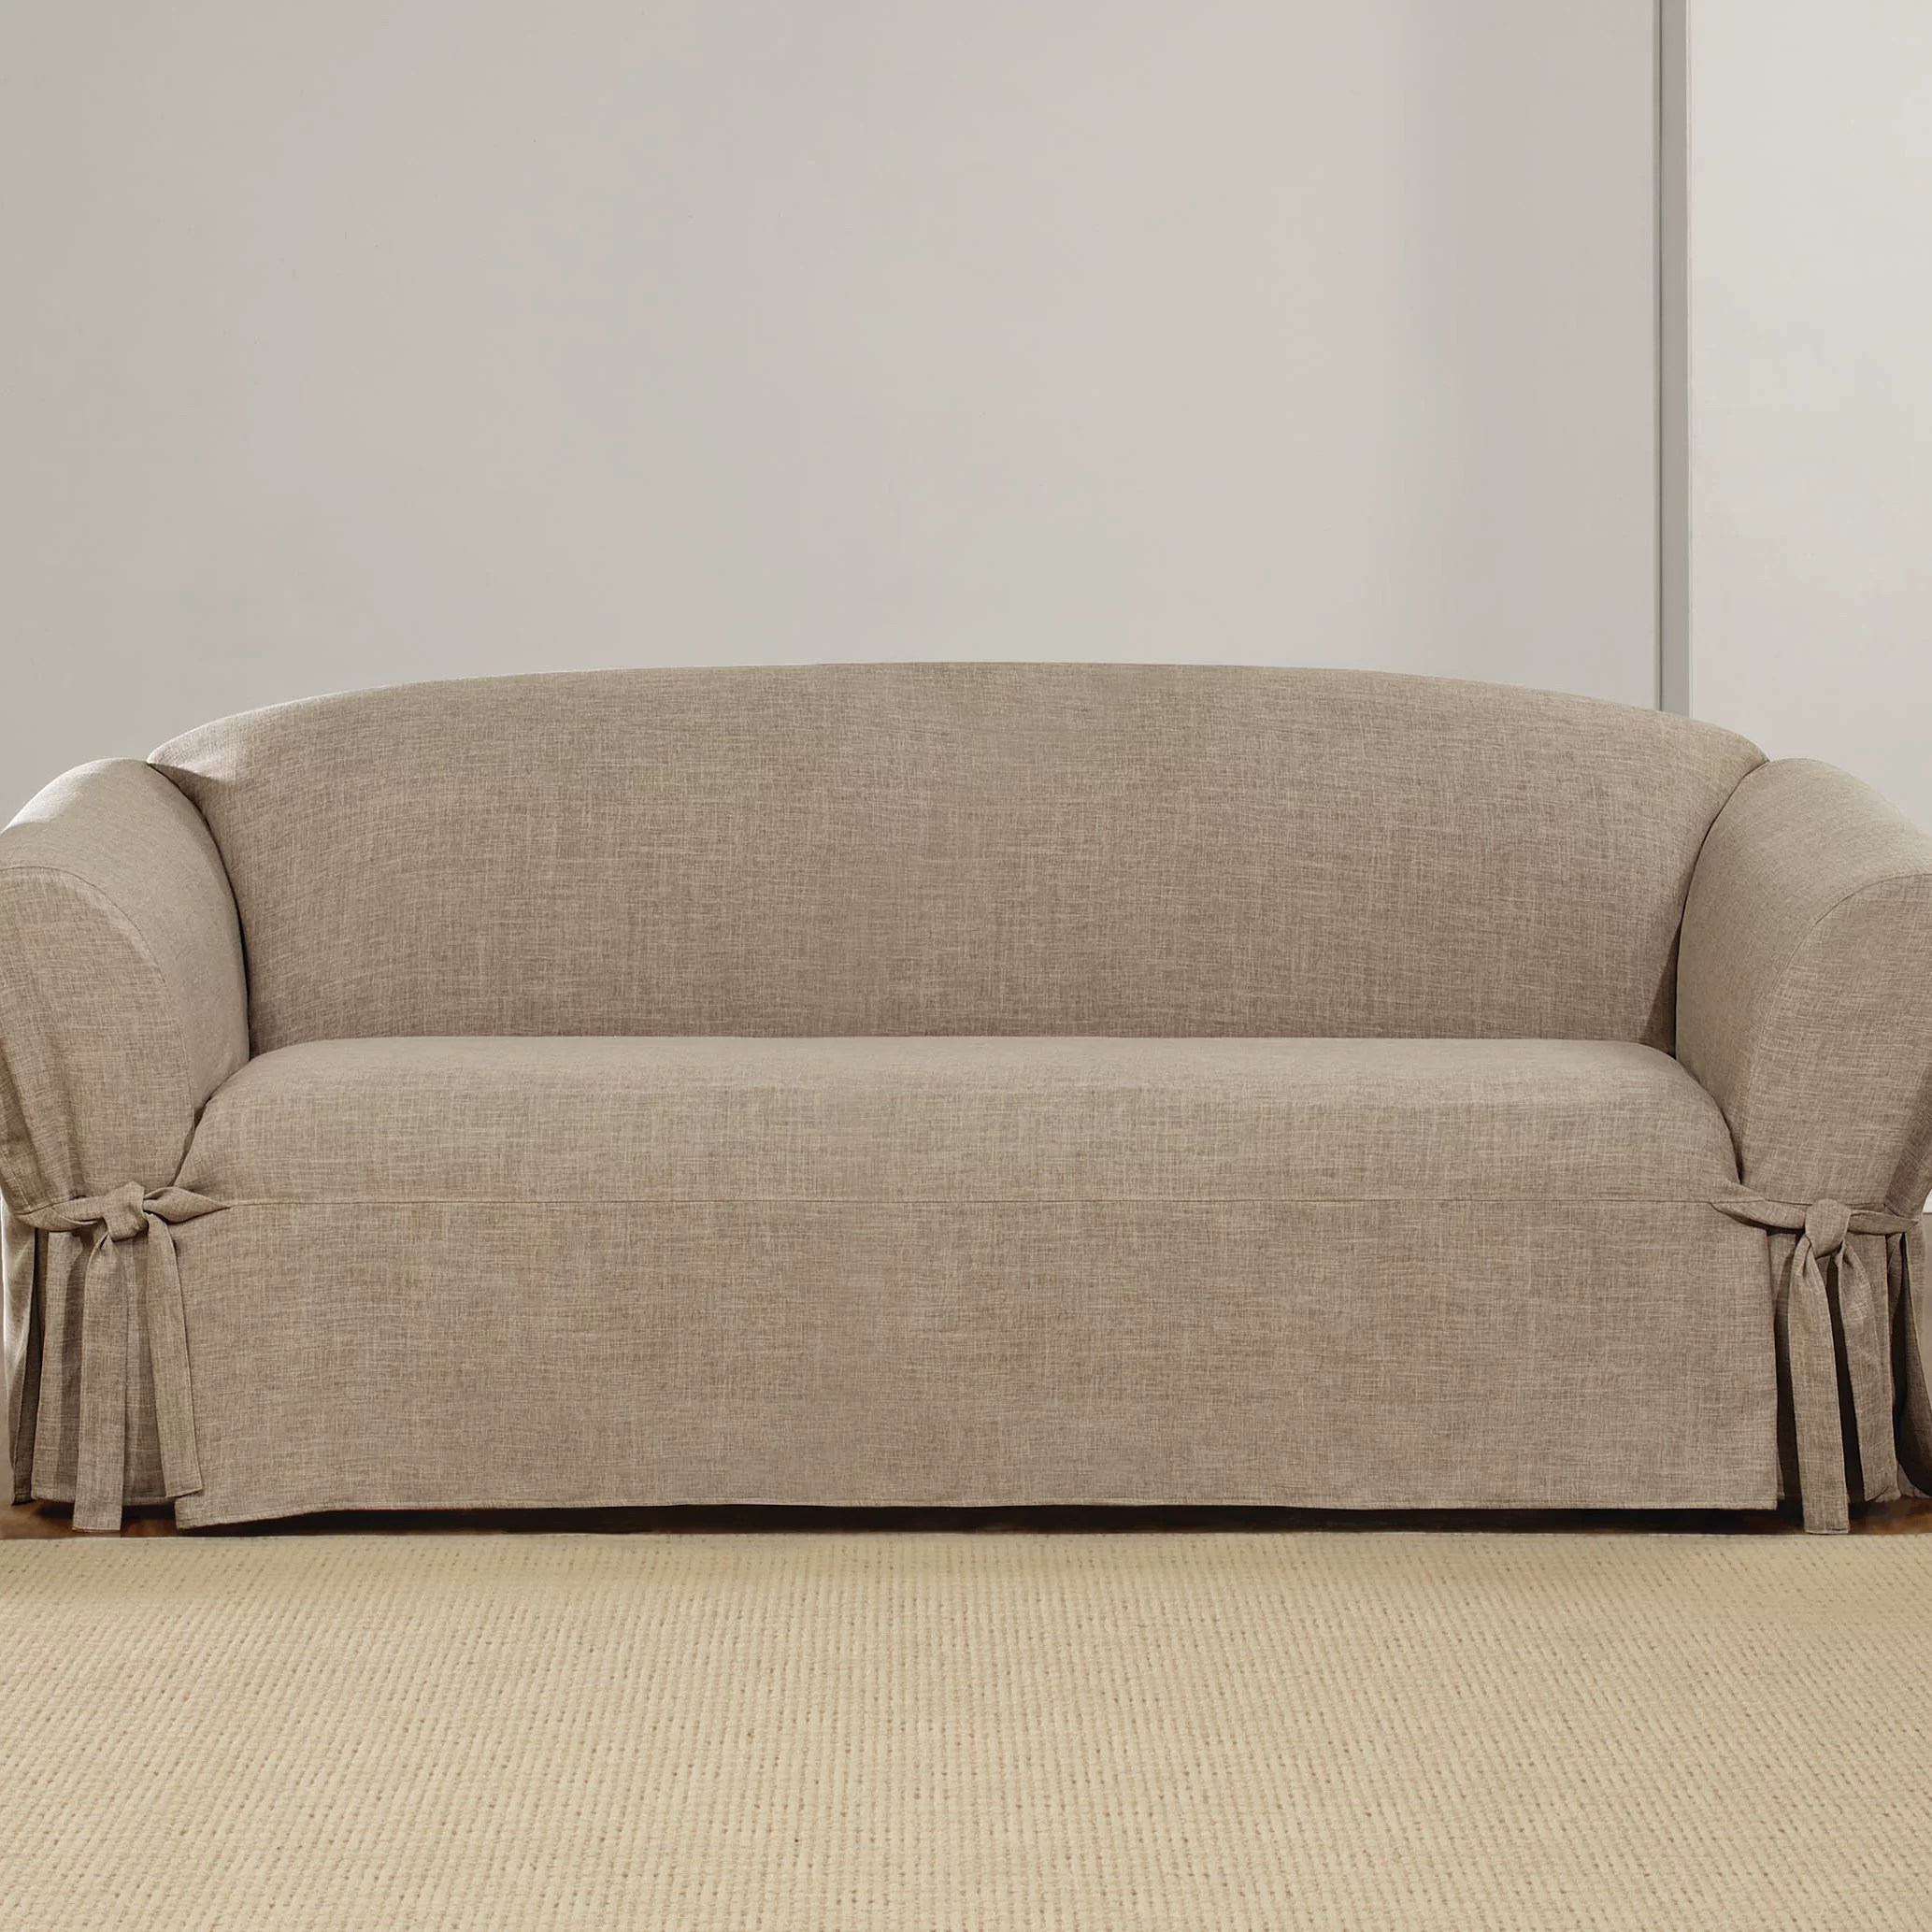 Grey Sofa Slipcover Textured Linen Box Cushion Sofa Slipcover